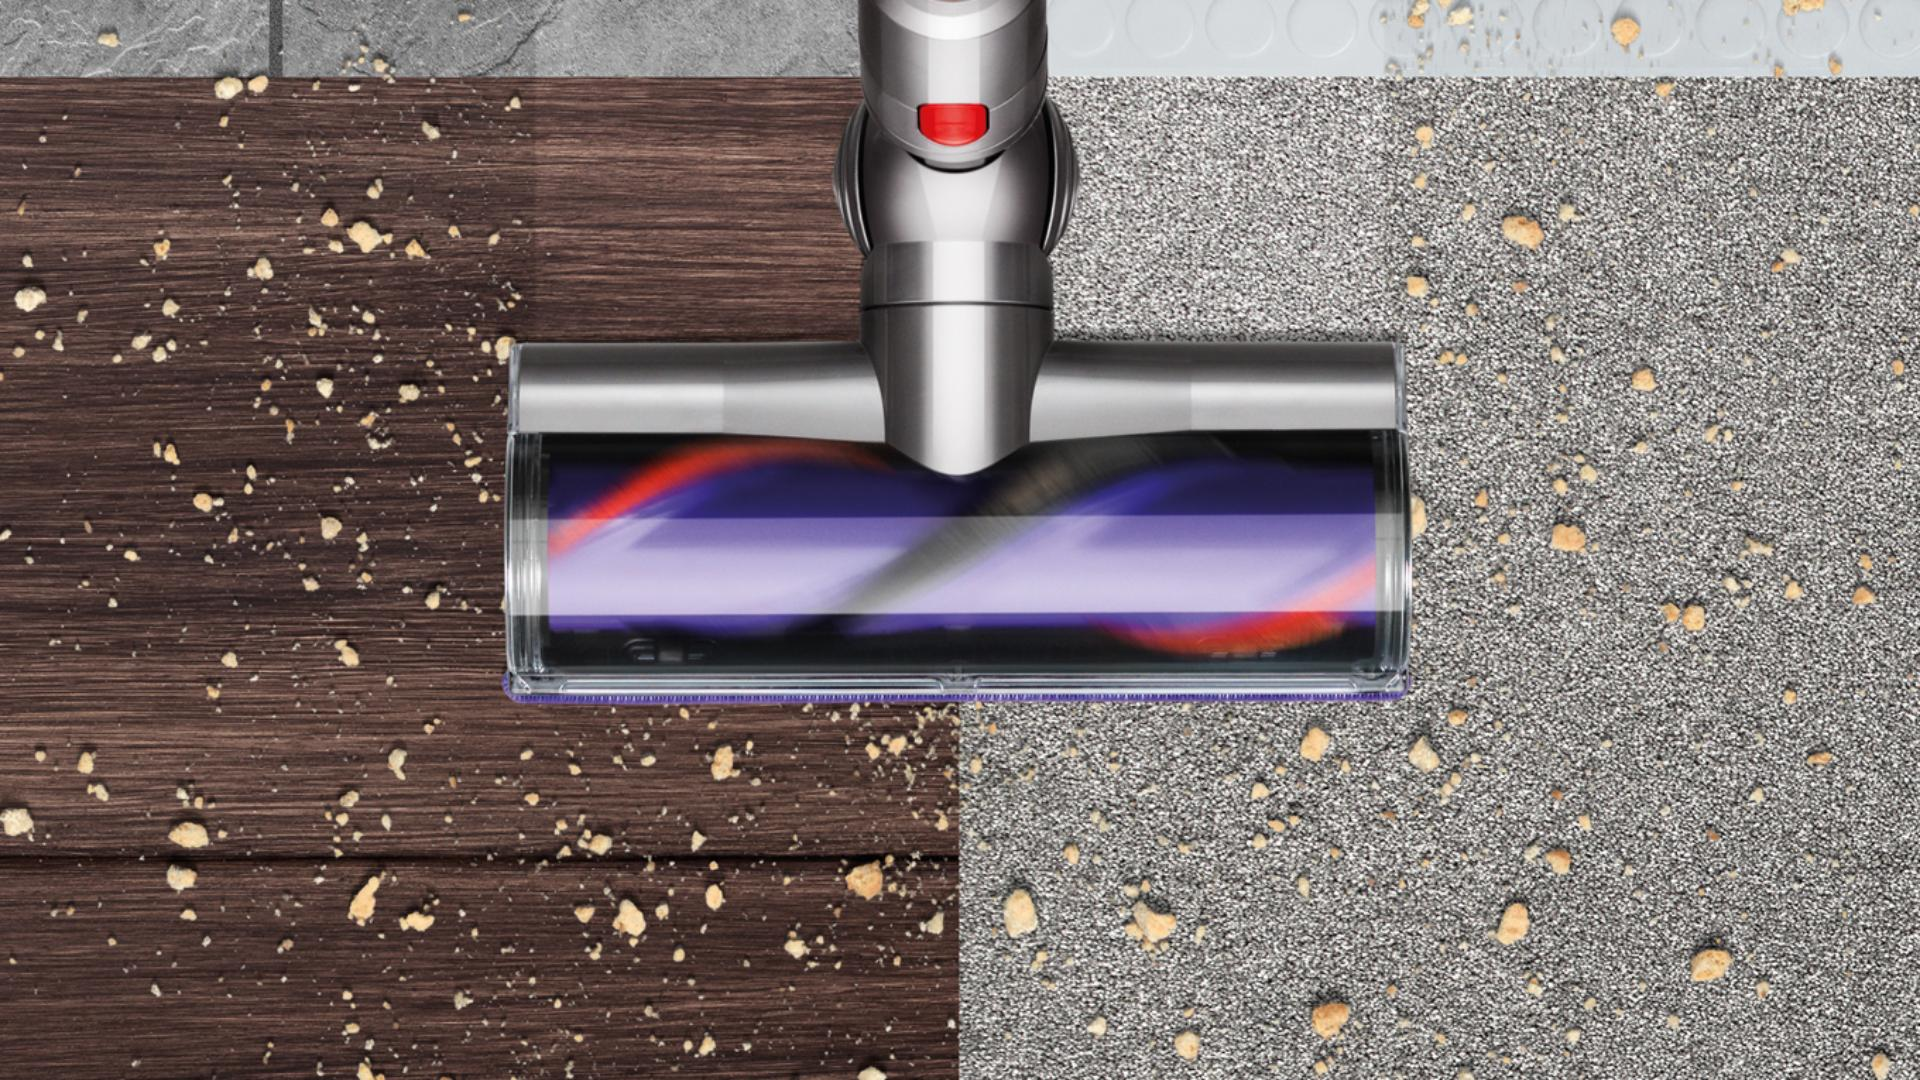 The Dyson Cyclone V10 vacuum cleaner's torque drive cleaner head picking up debris across multiple floor surfaces.